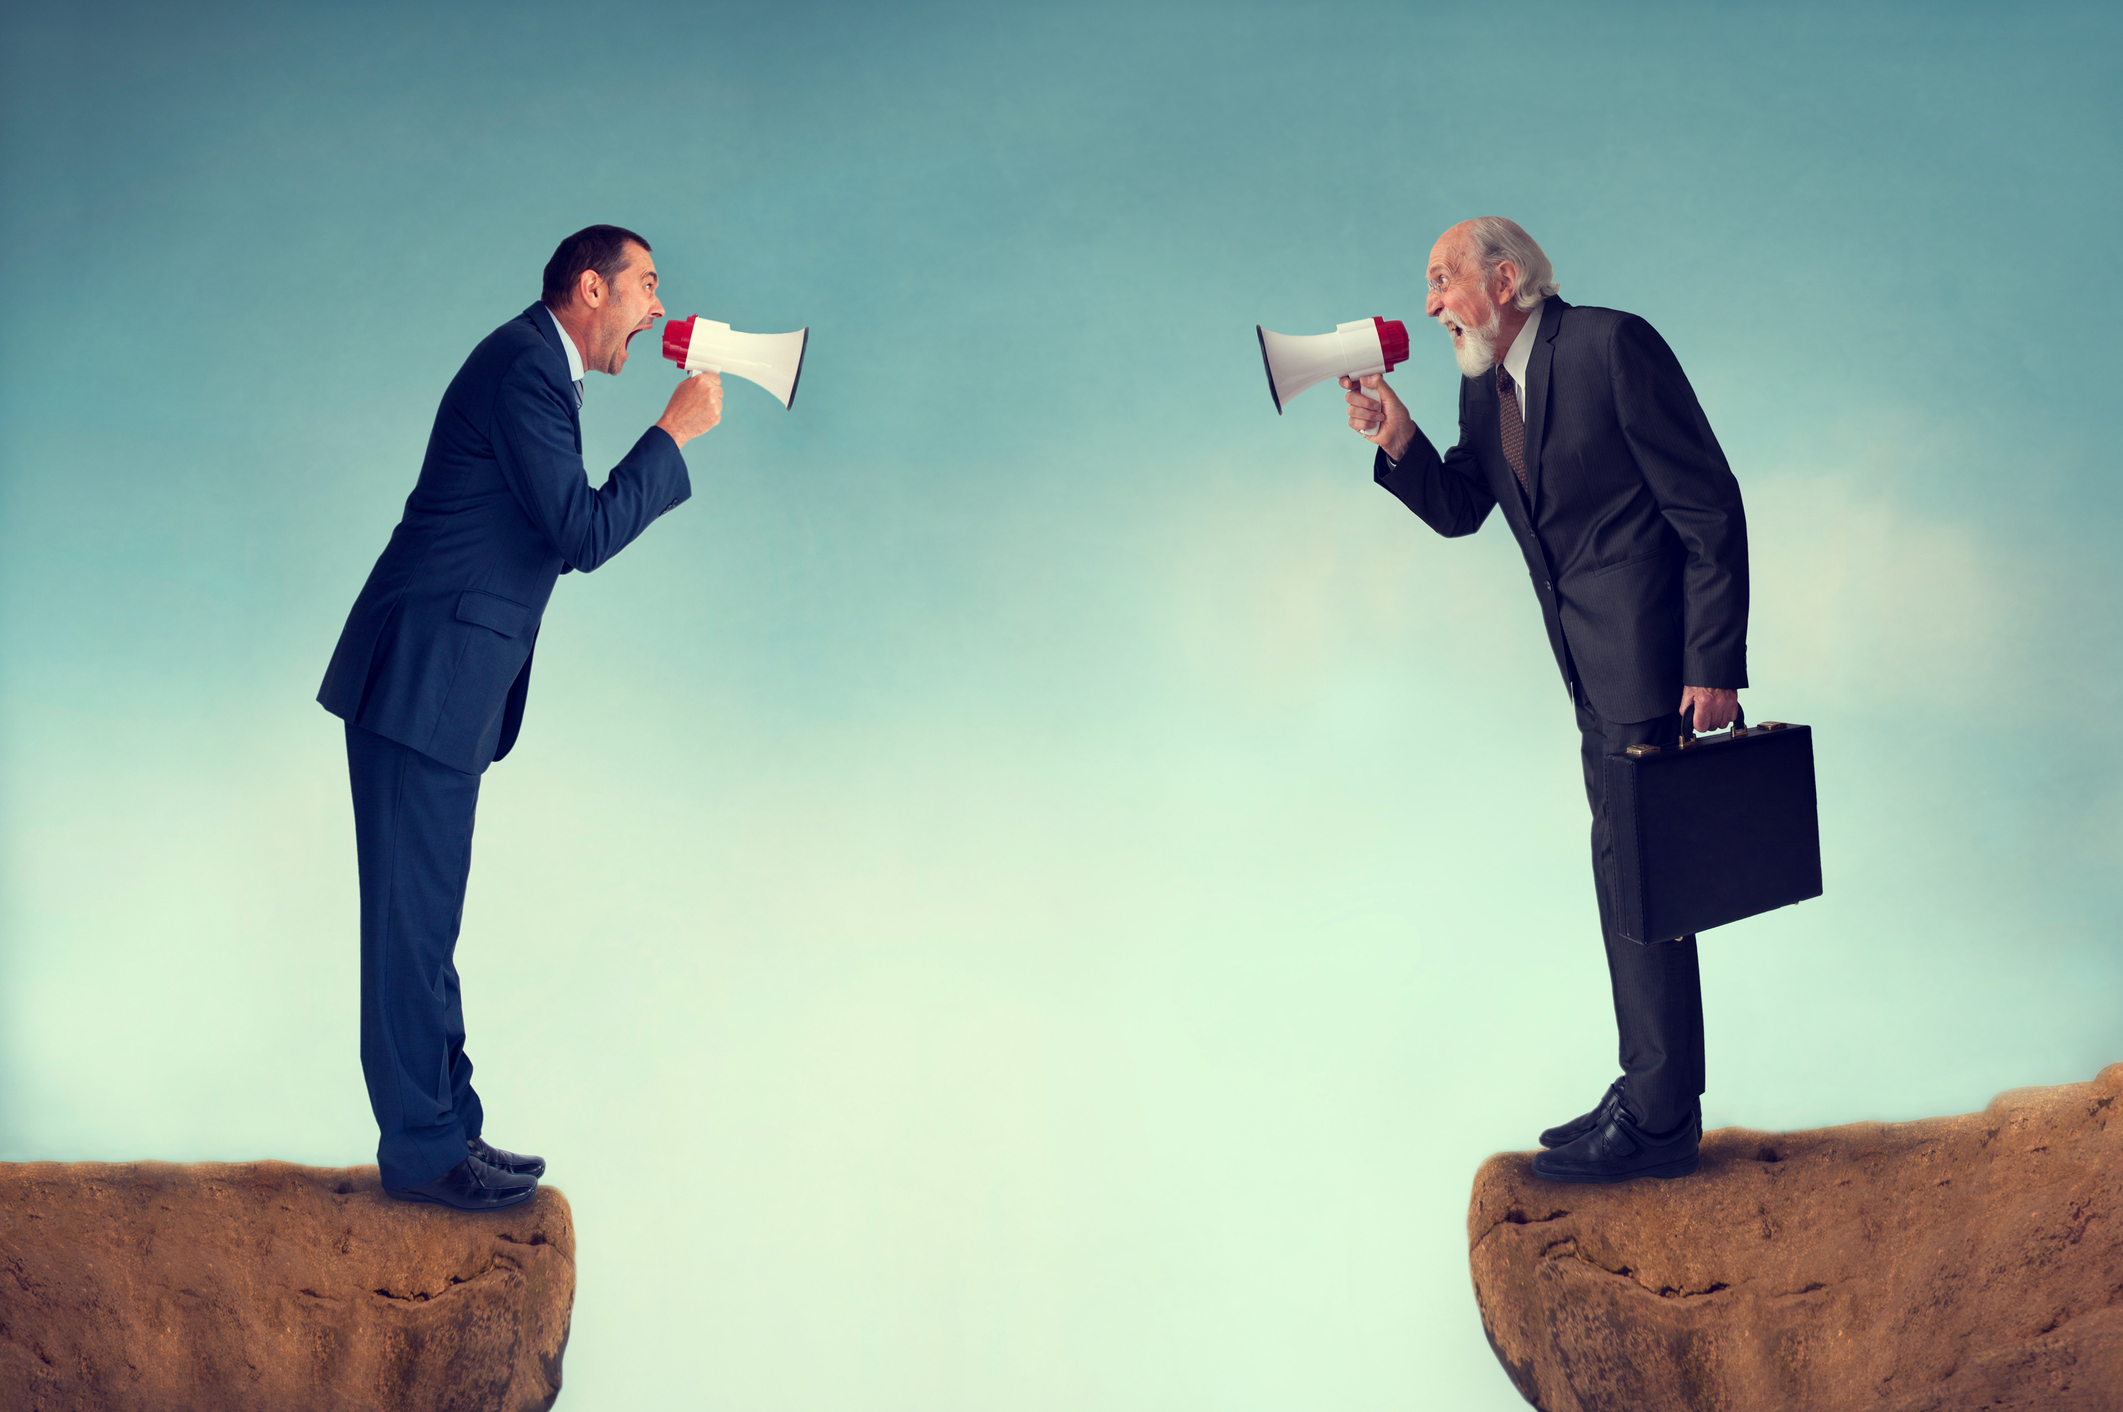 Success In Negotiations >> Anger Derails Negotiations, Unless You Have a Plan – Association for Psychological Science